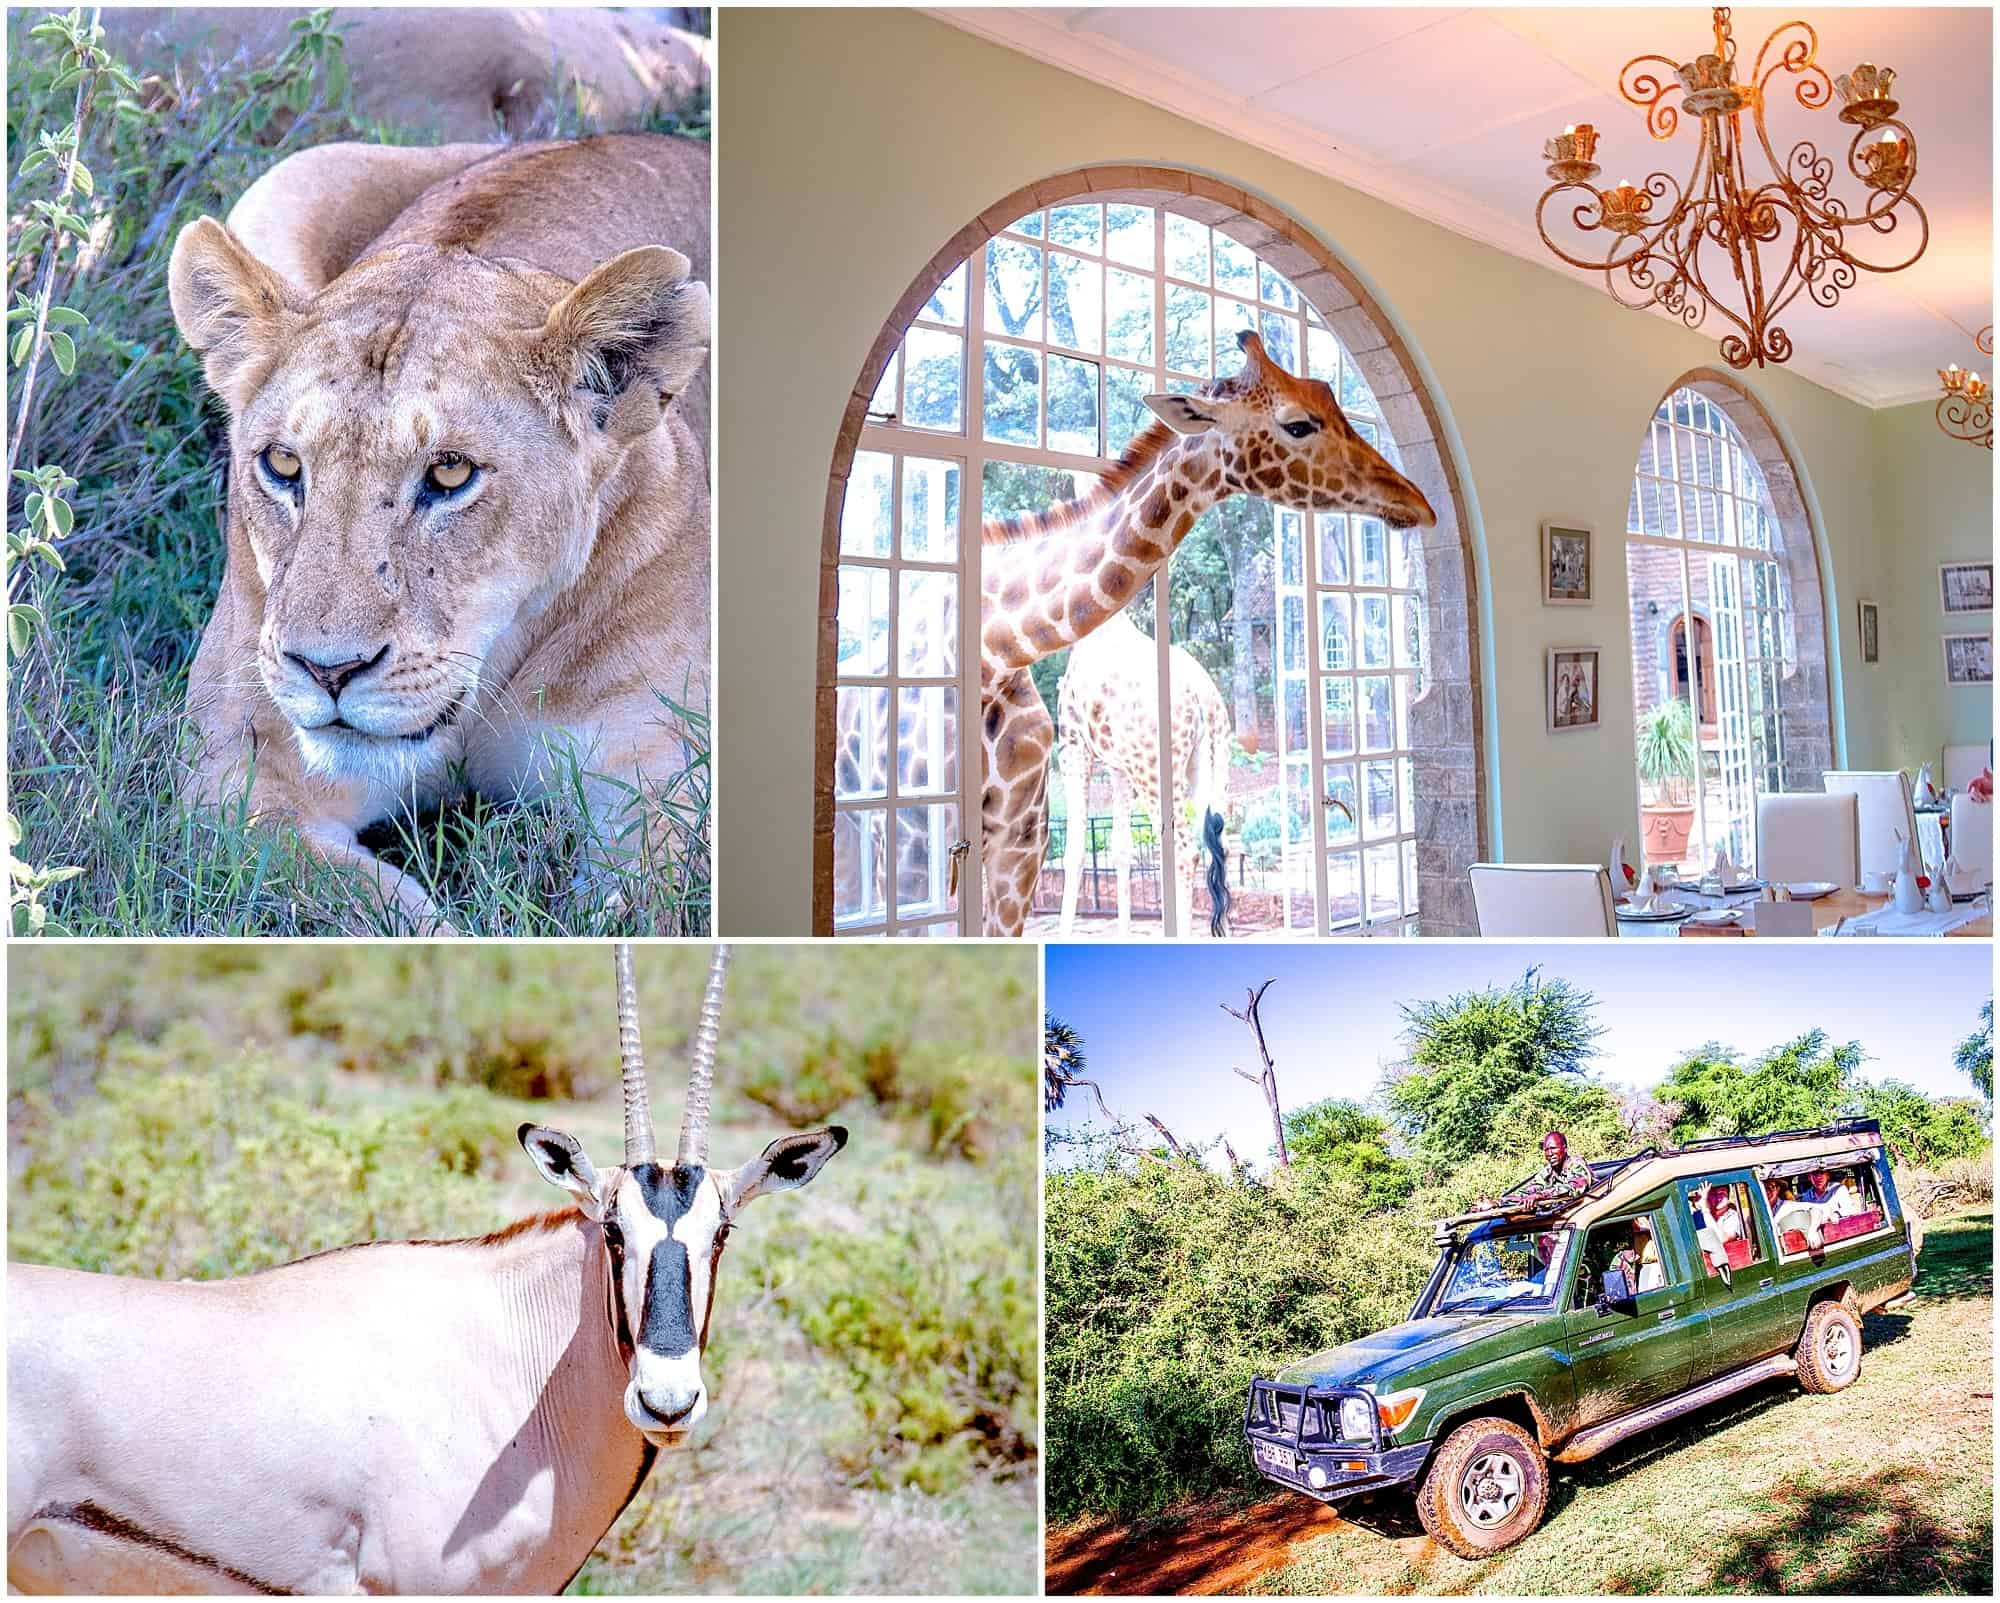 Safari wildlife collection montage